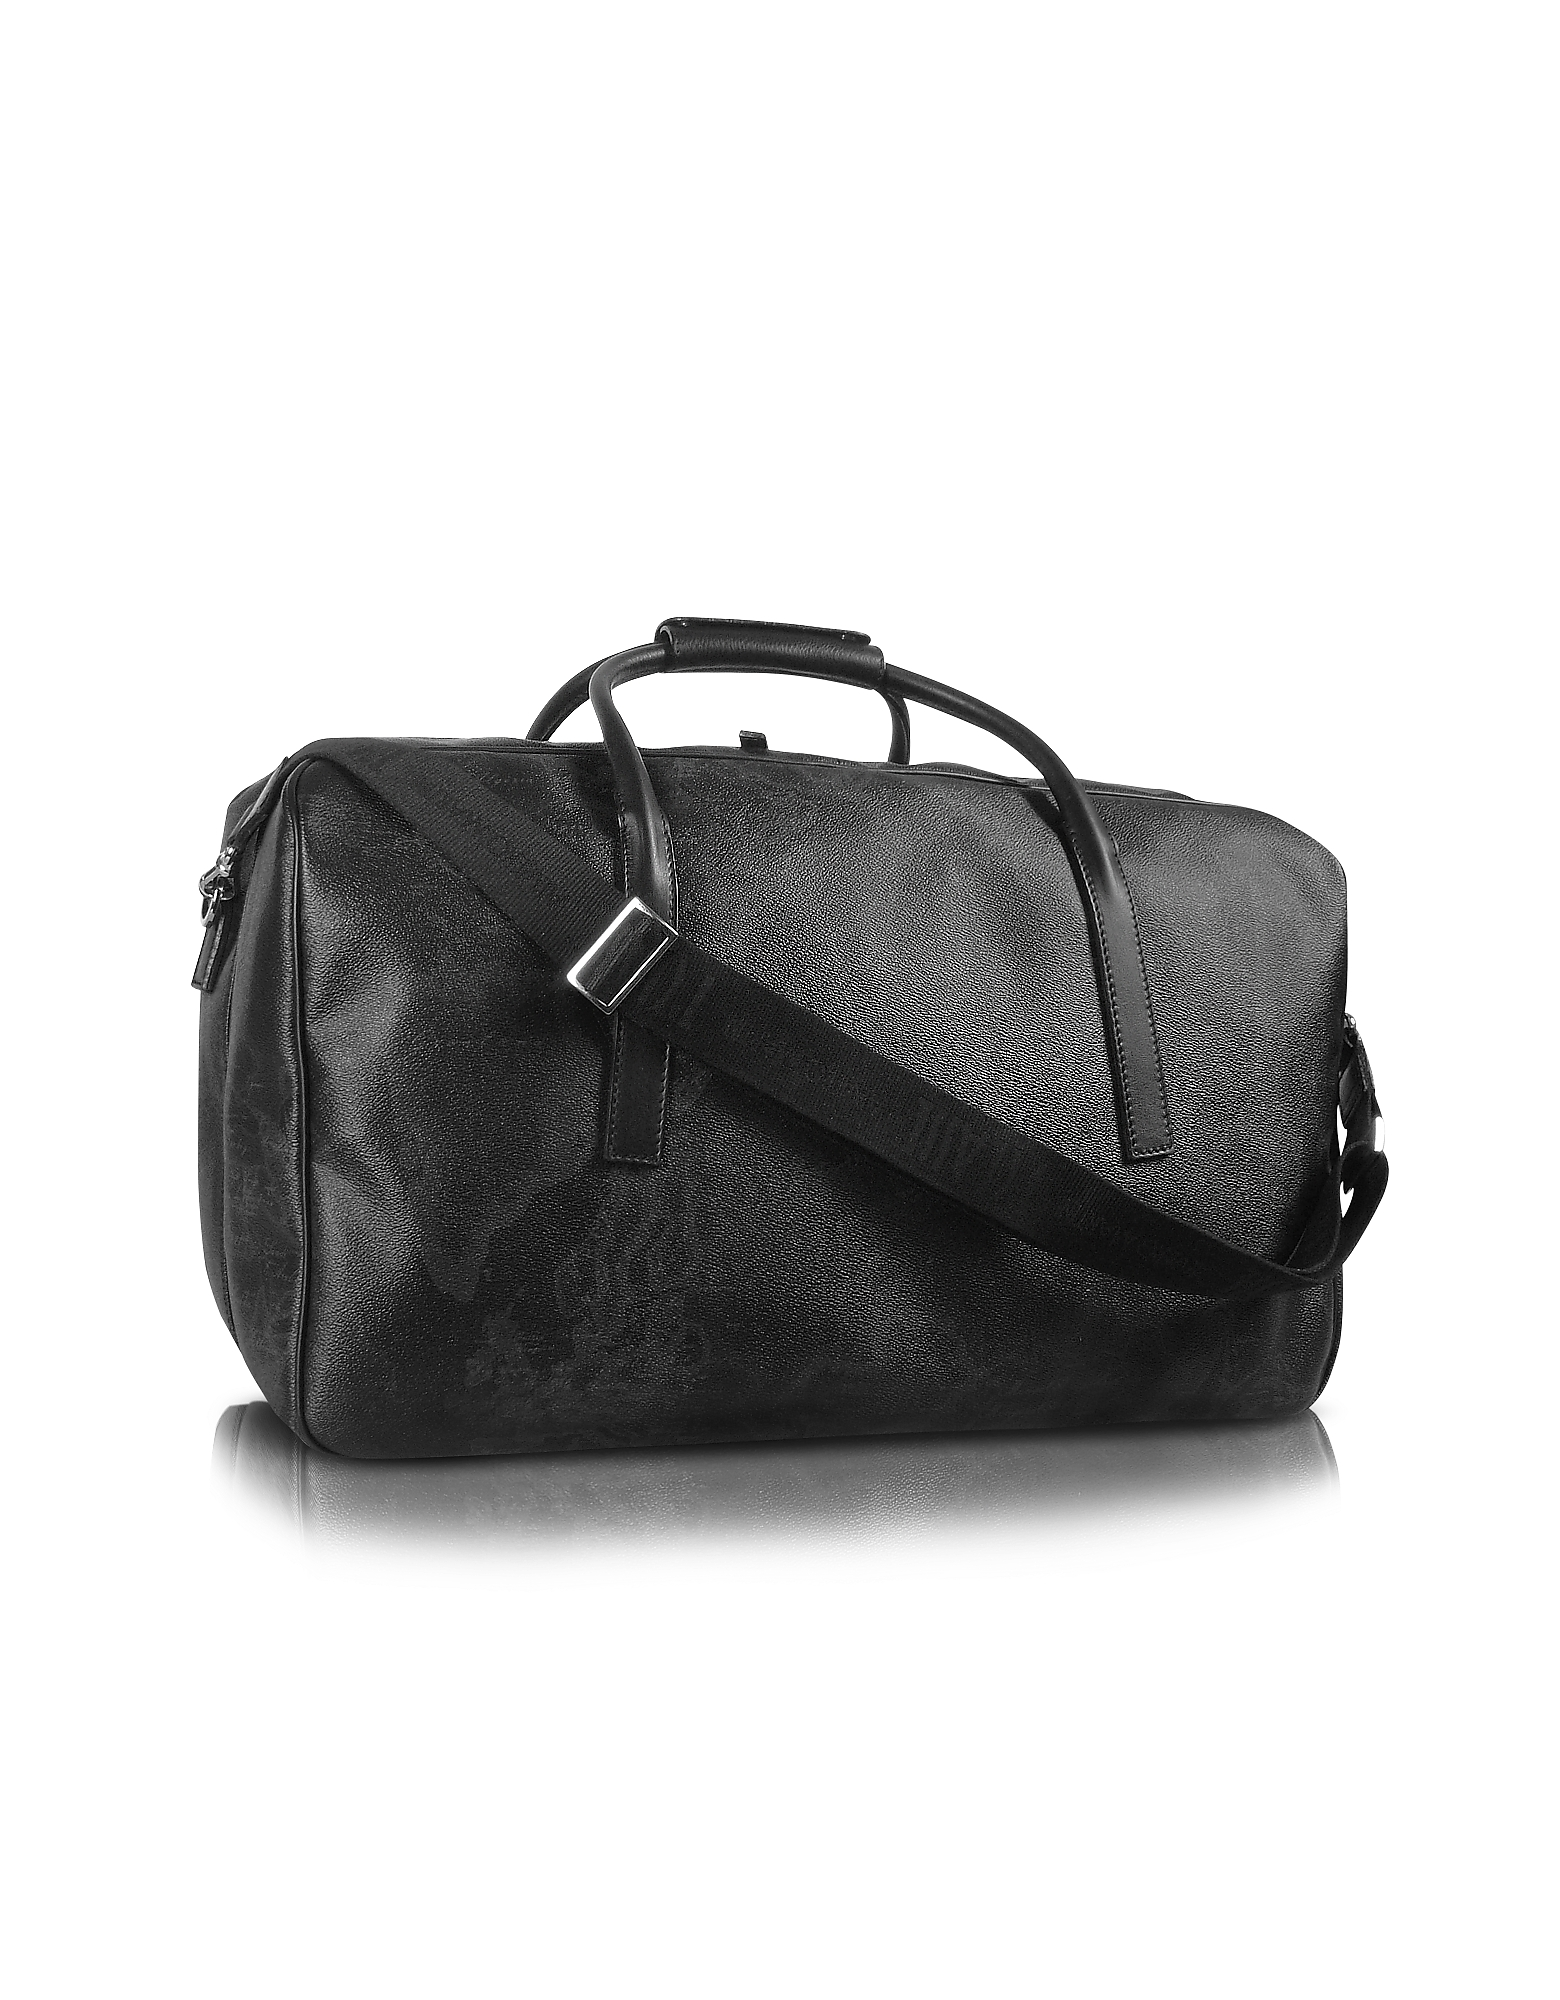 Alviero Martini 1A Classe Designer Travel Bags,  1a Prima Classe - Geo Black Double Compartment Zip Travel Bag